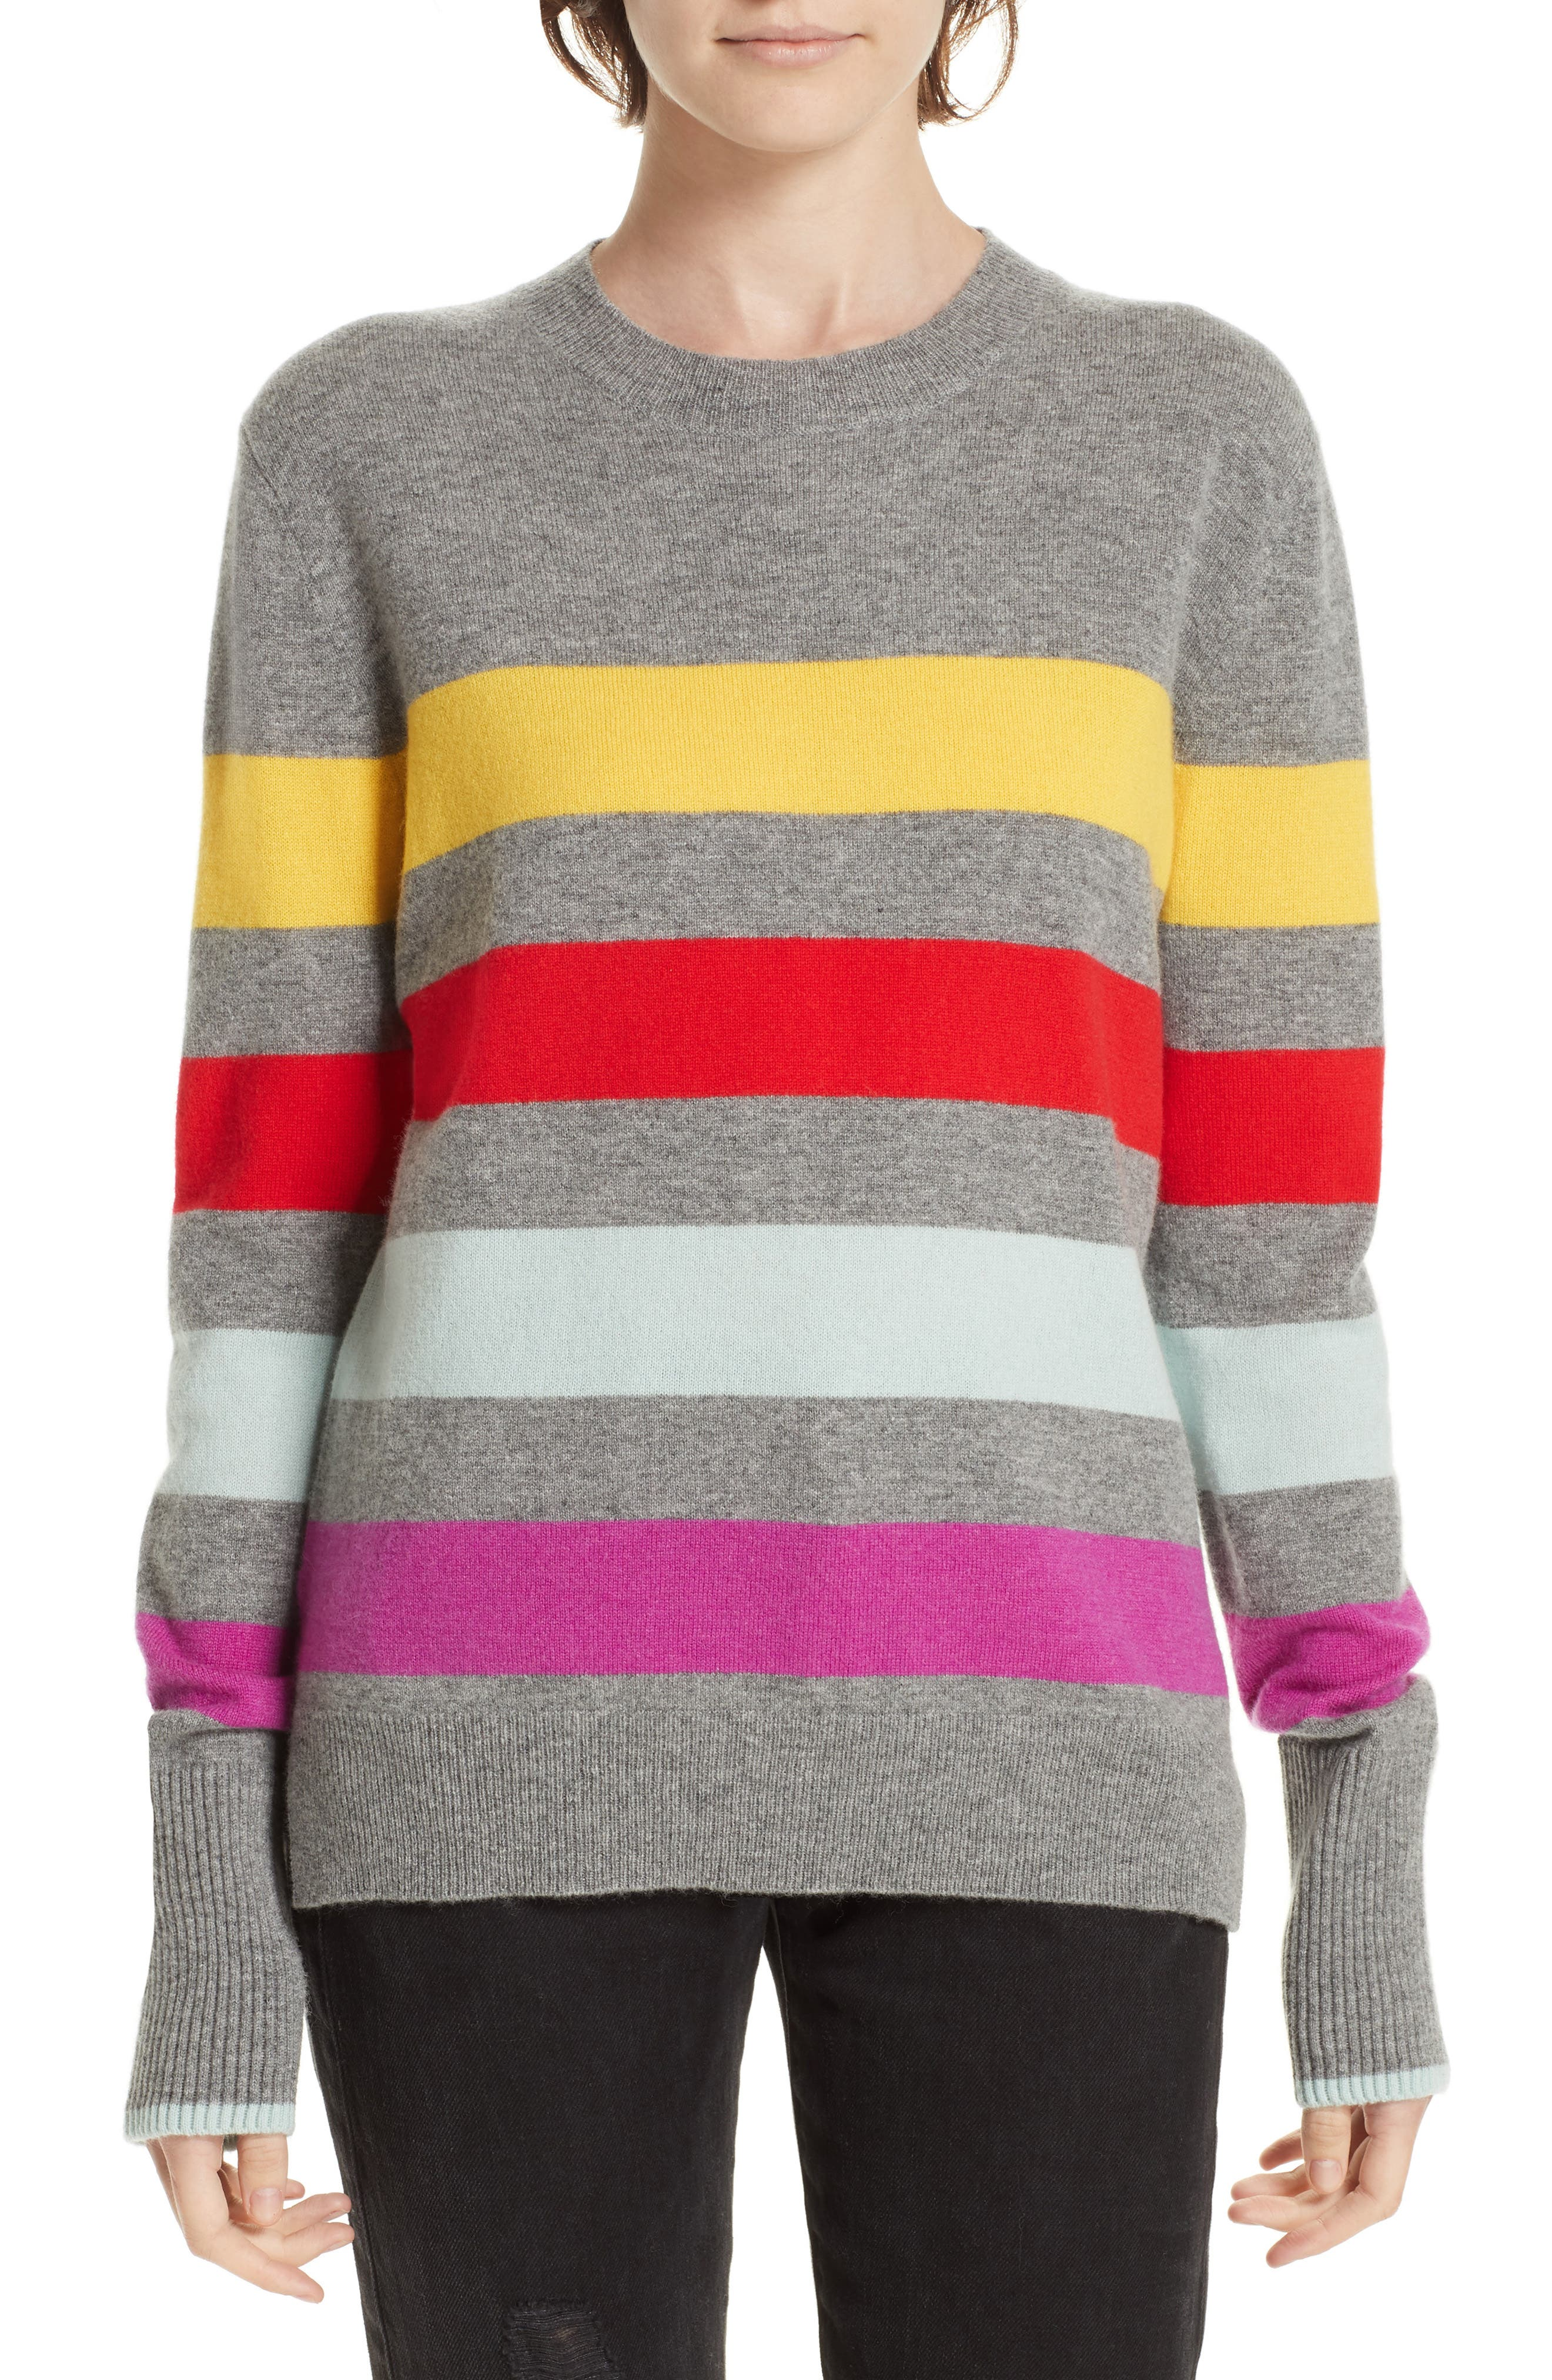 Candy Stripe Sweater,                         Main,                         color, GREY MARLE/ RAINBOW